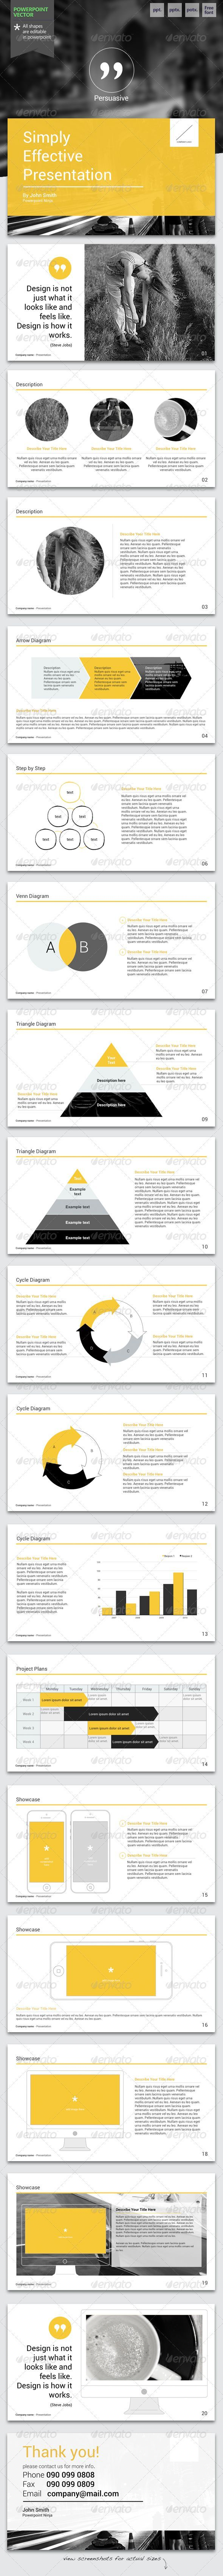 Persuasive - Powerpoint Template #GraphicRiver Impress your audience with clean, modern, and professional presentation!.: